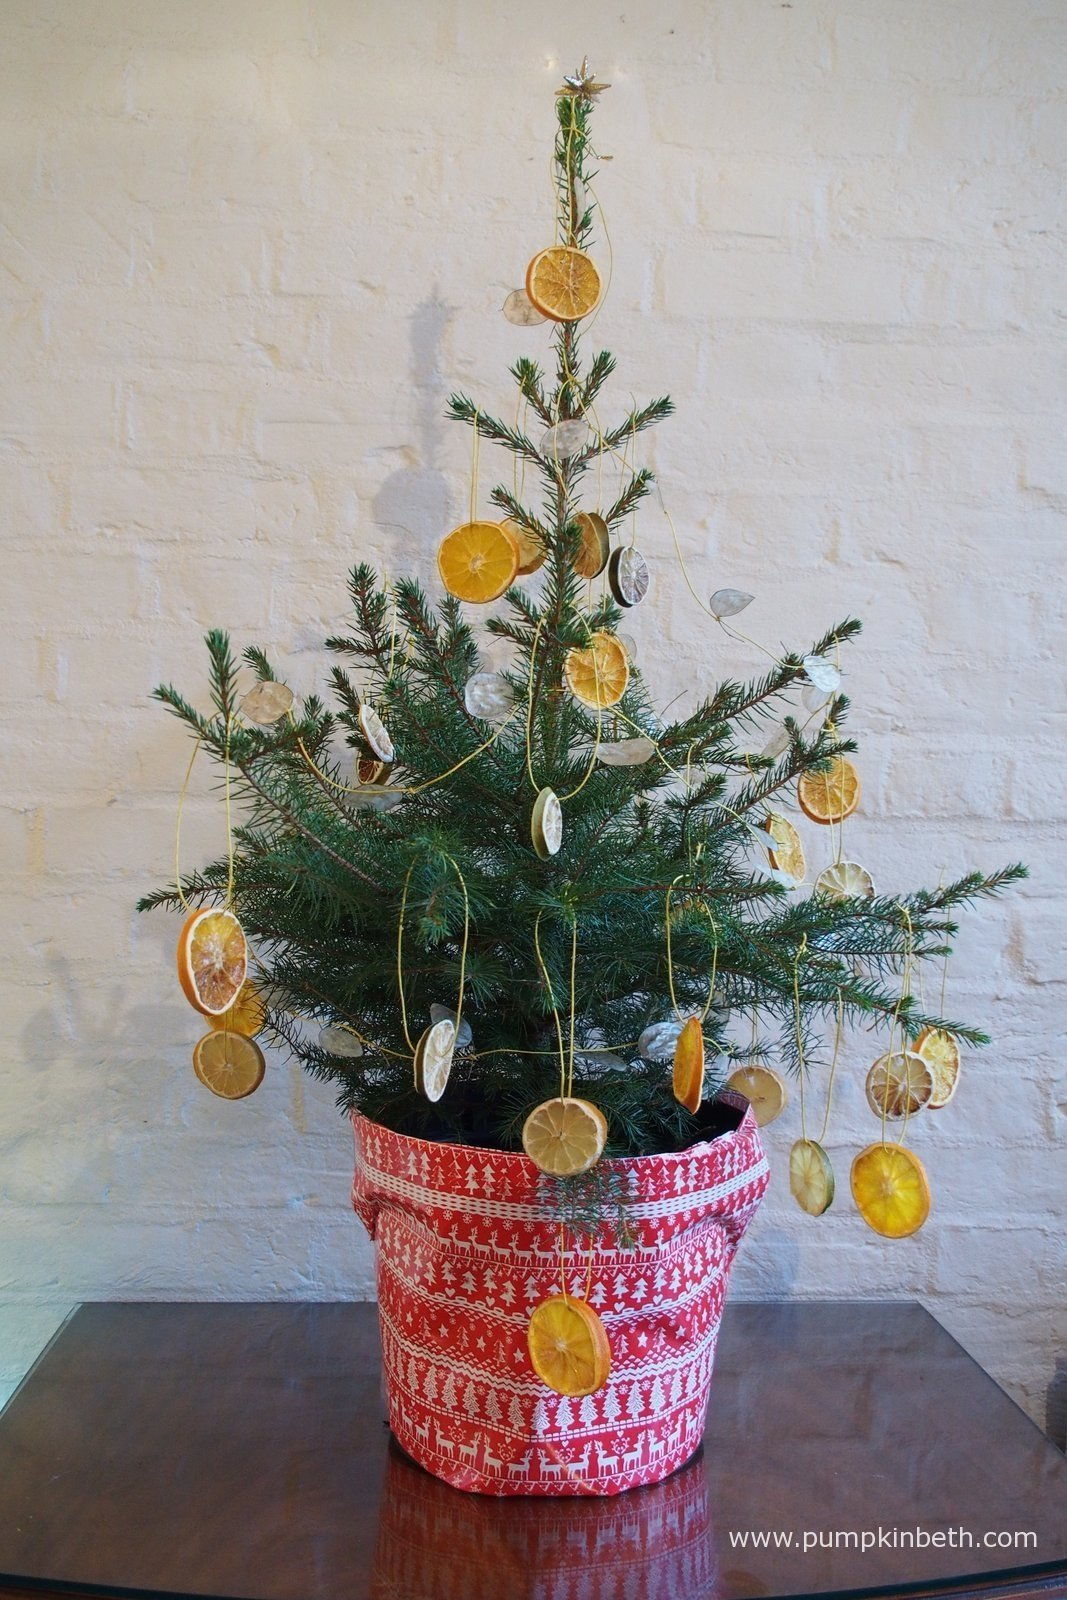 Live Growing Potted Christmas Trees From Wheeler Street